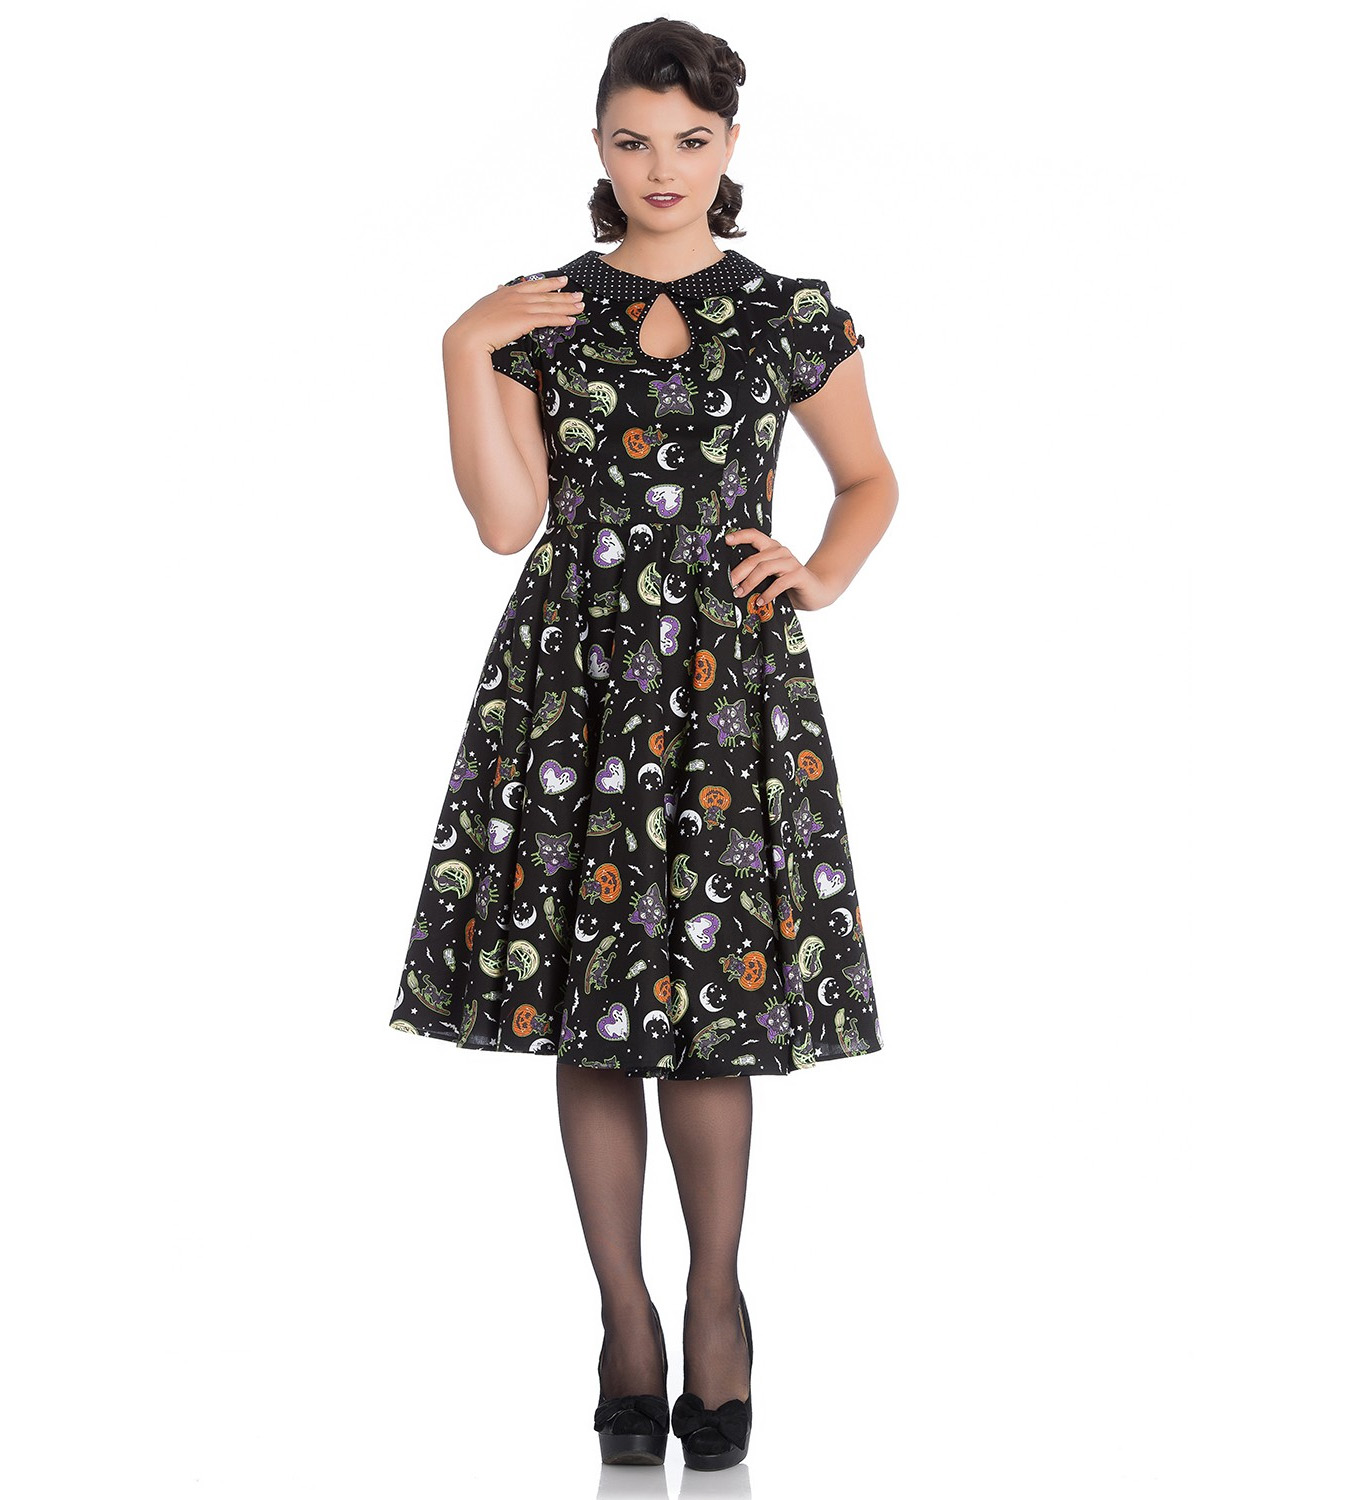 Hell-Bunny-50s-Black-Pin-Up-Dress-Horror-Witchy-SALEM-Halloween-All-Sizes thumbnail 3